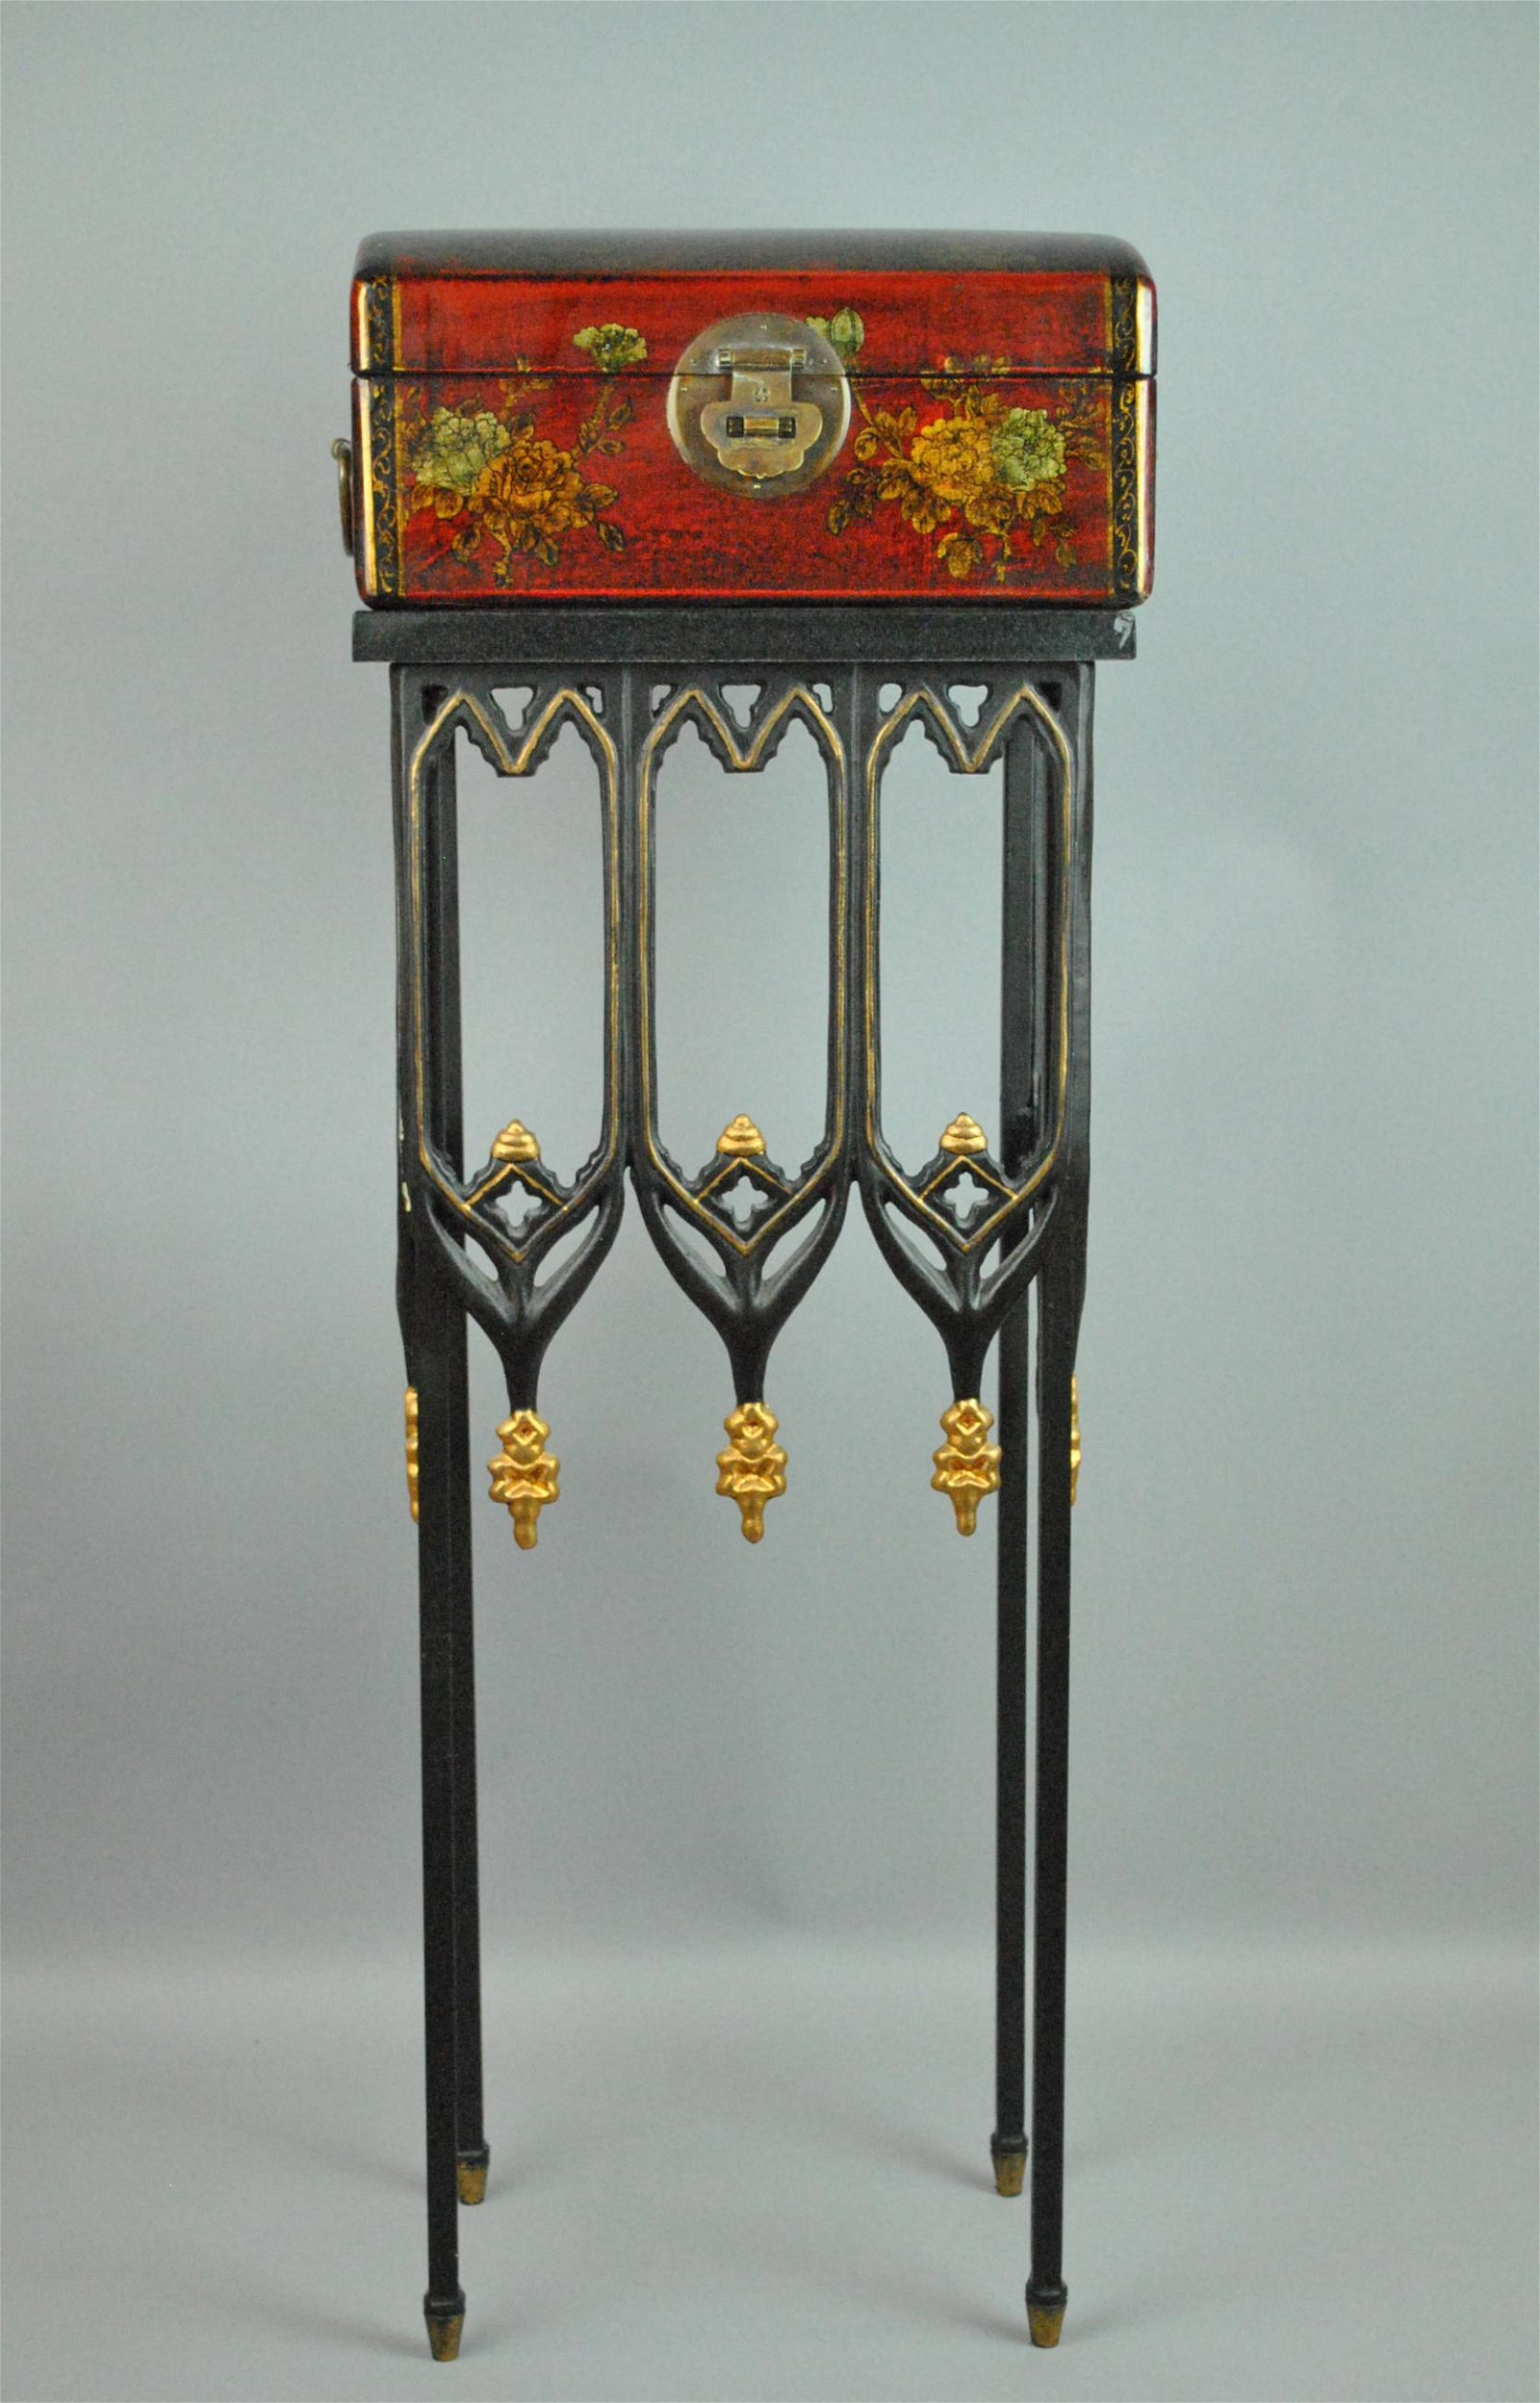 CHINOISERIE DECORATED WINE BOX ON STAND